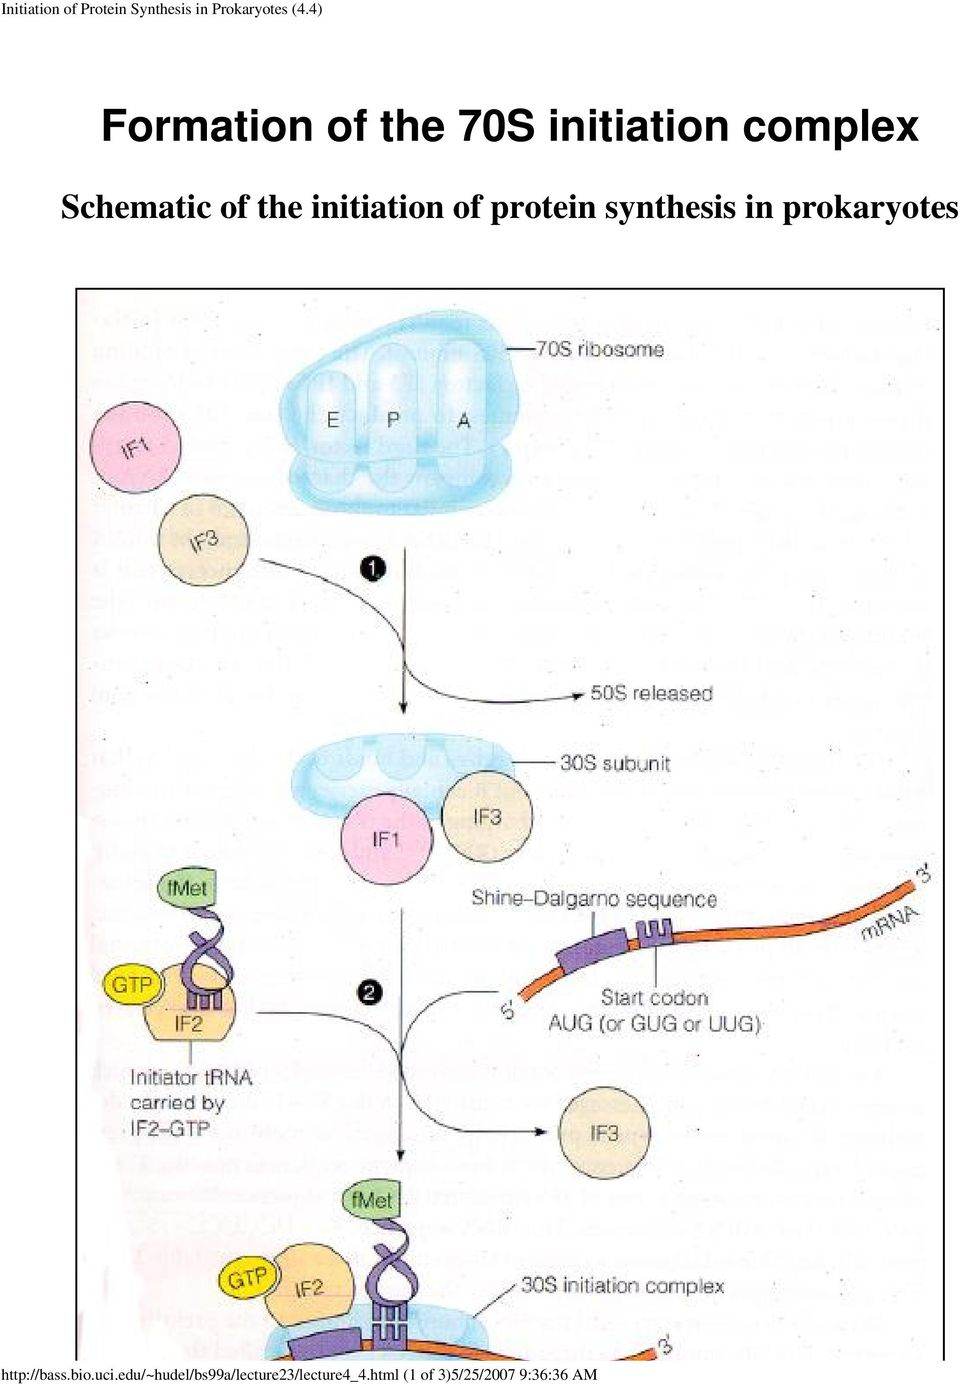 initiation of protein synthesis in prokaryotes http://bass.